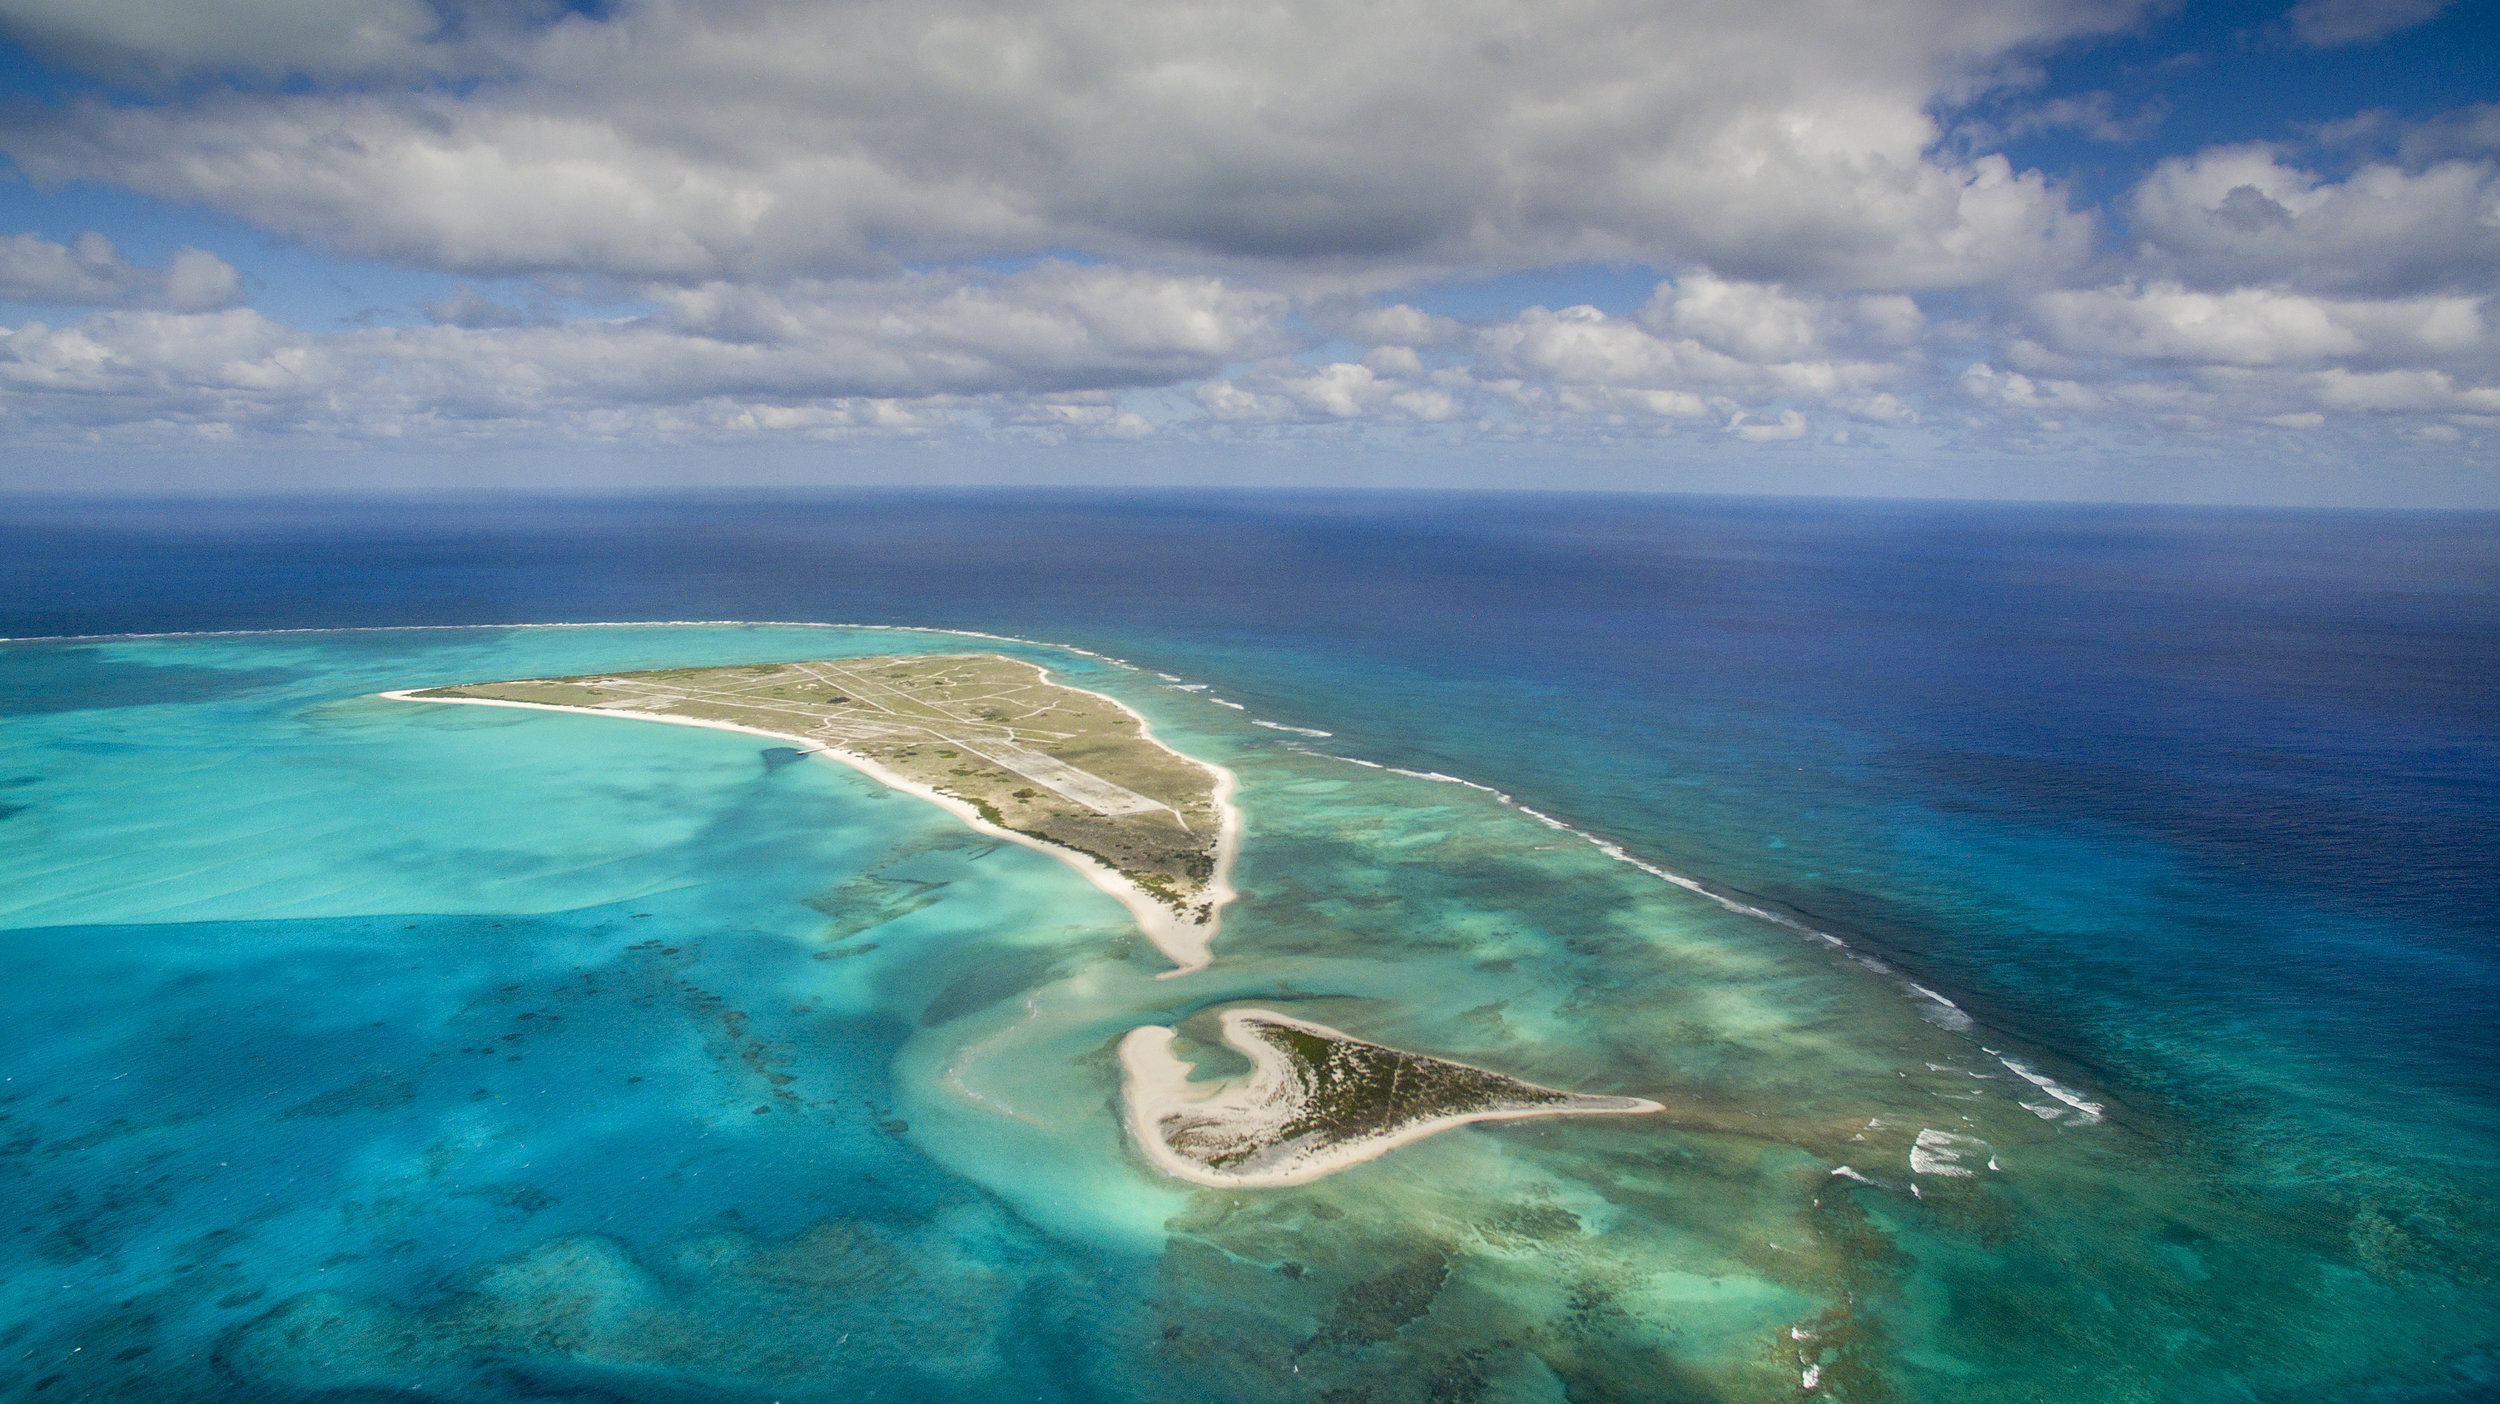 Easter and Spit Islands, Midway Atoll National Wildlife Refuge & Battle of Midway National Memorial.